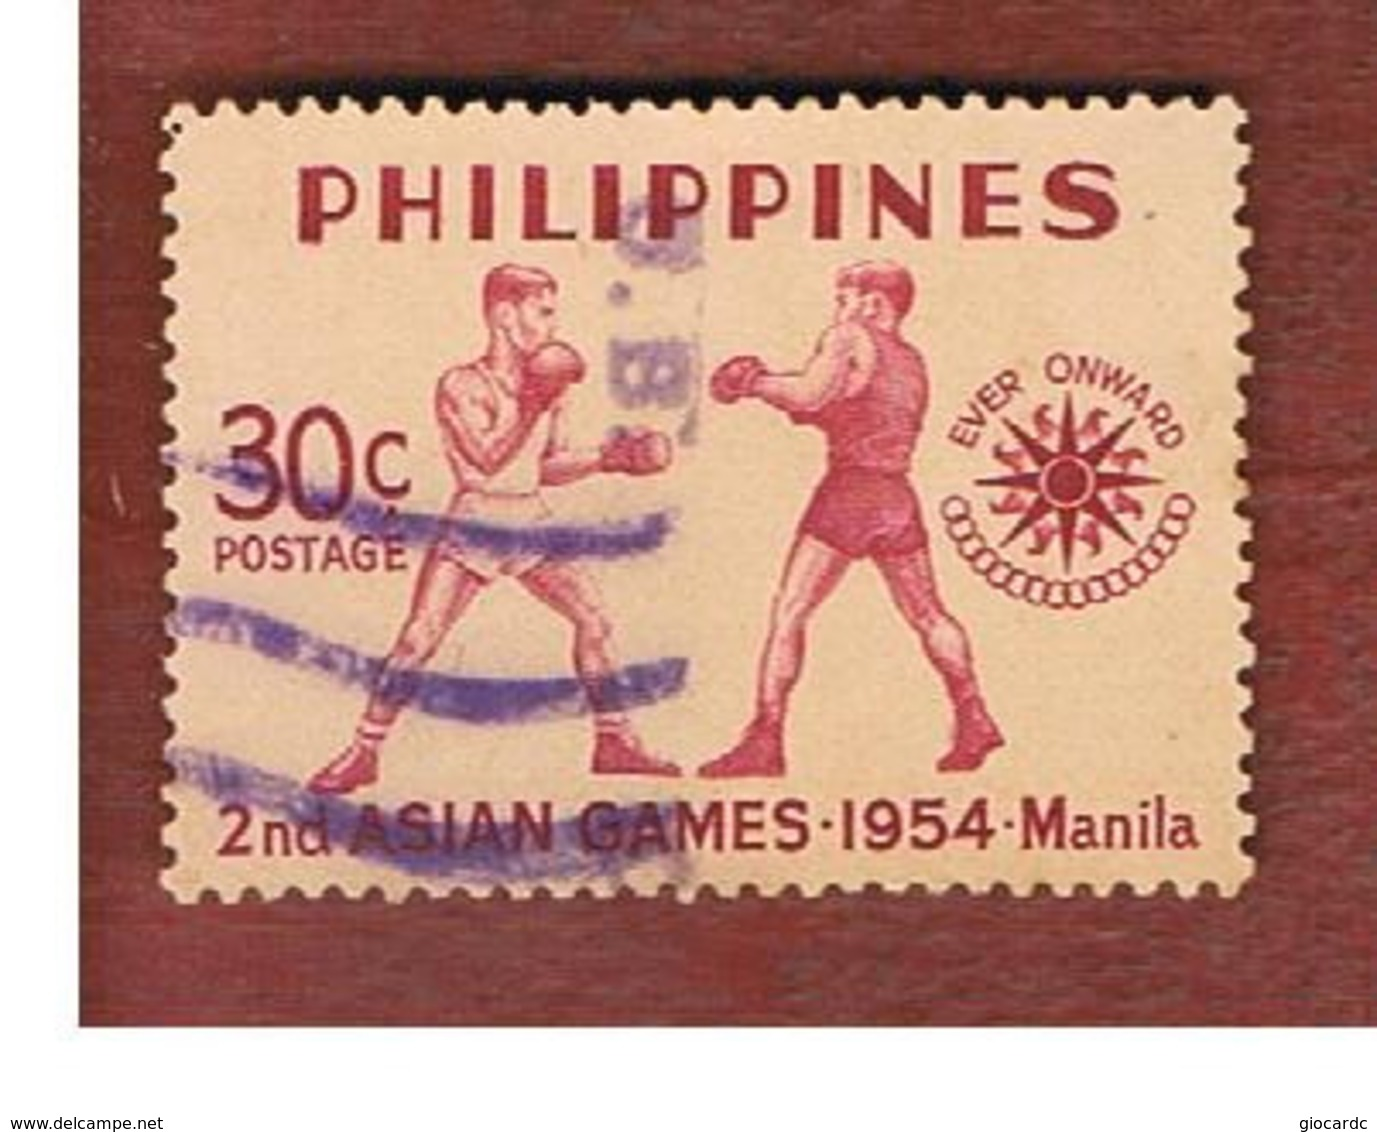 FILIPPINE (PHILIPPINES) - SG 768  -  1954 ASIAN GAMES: BOXING - USED ° - Filippine